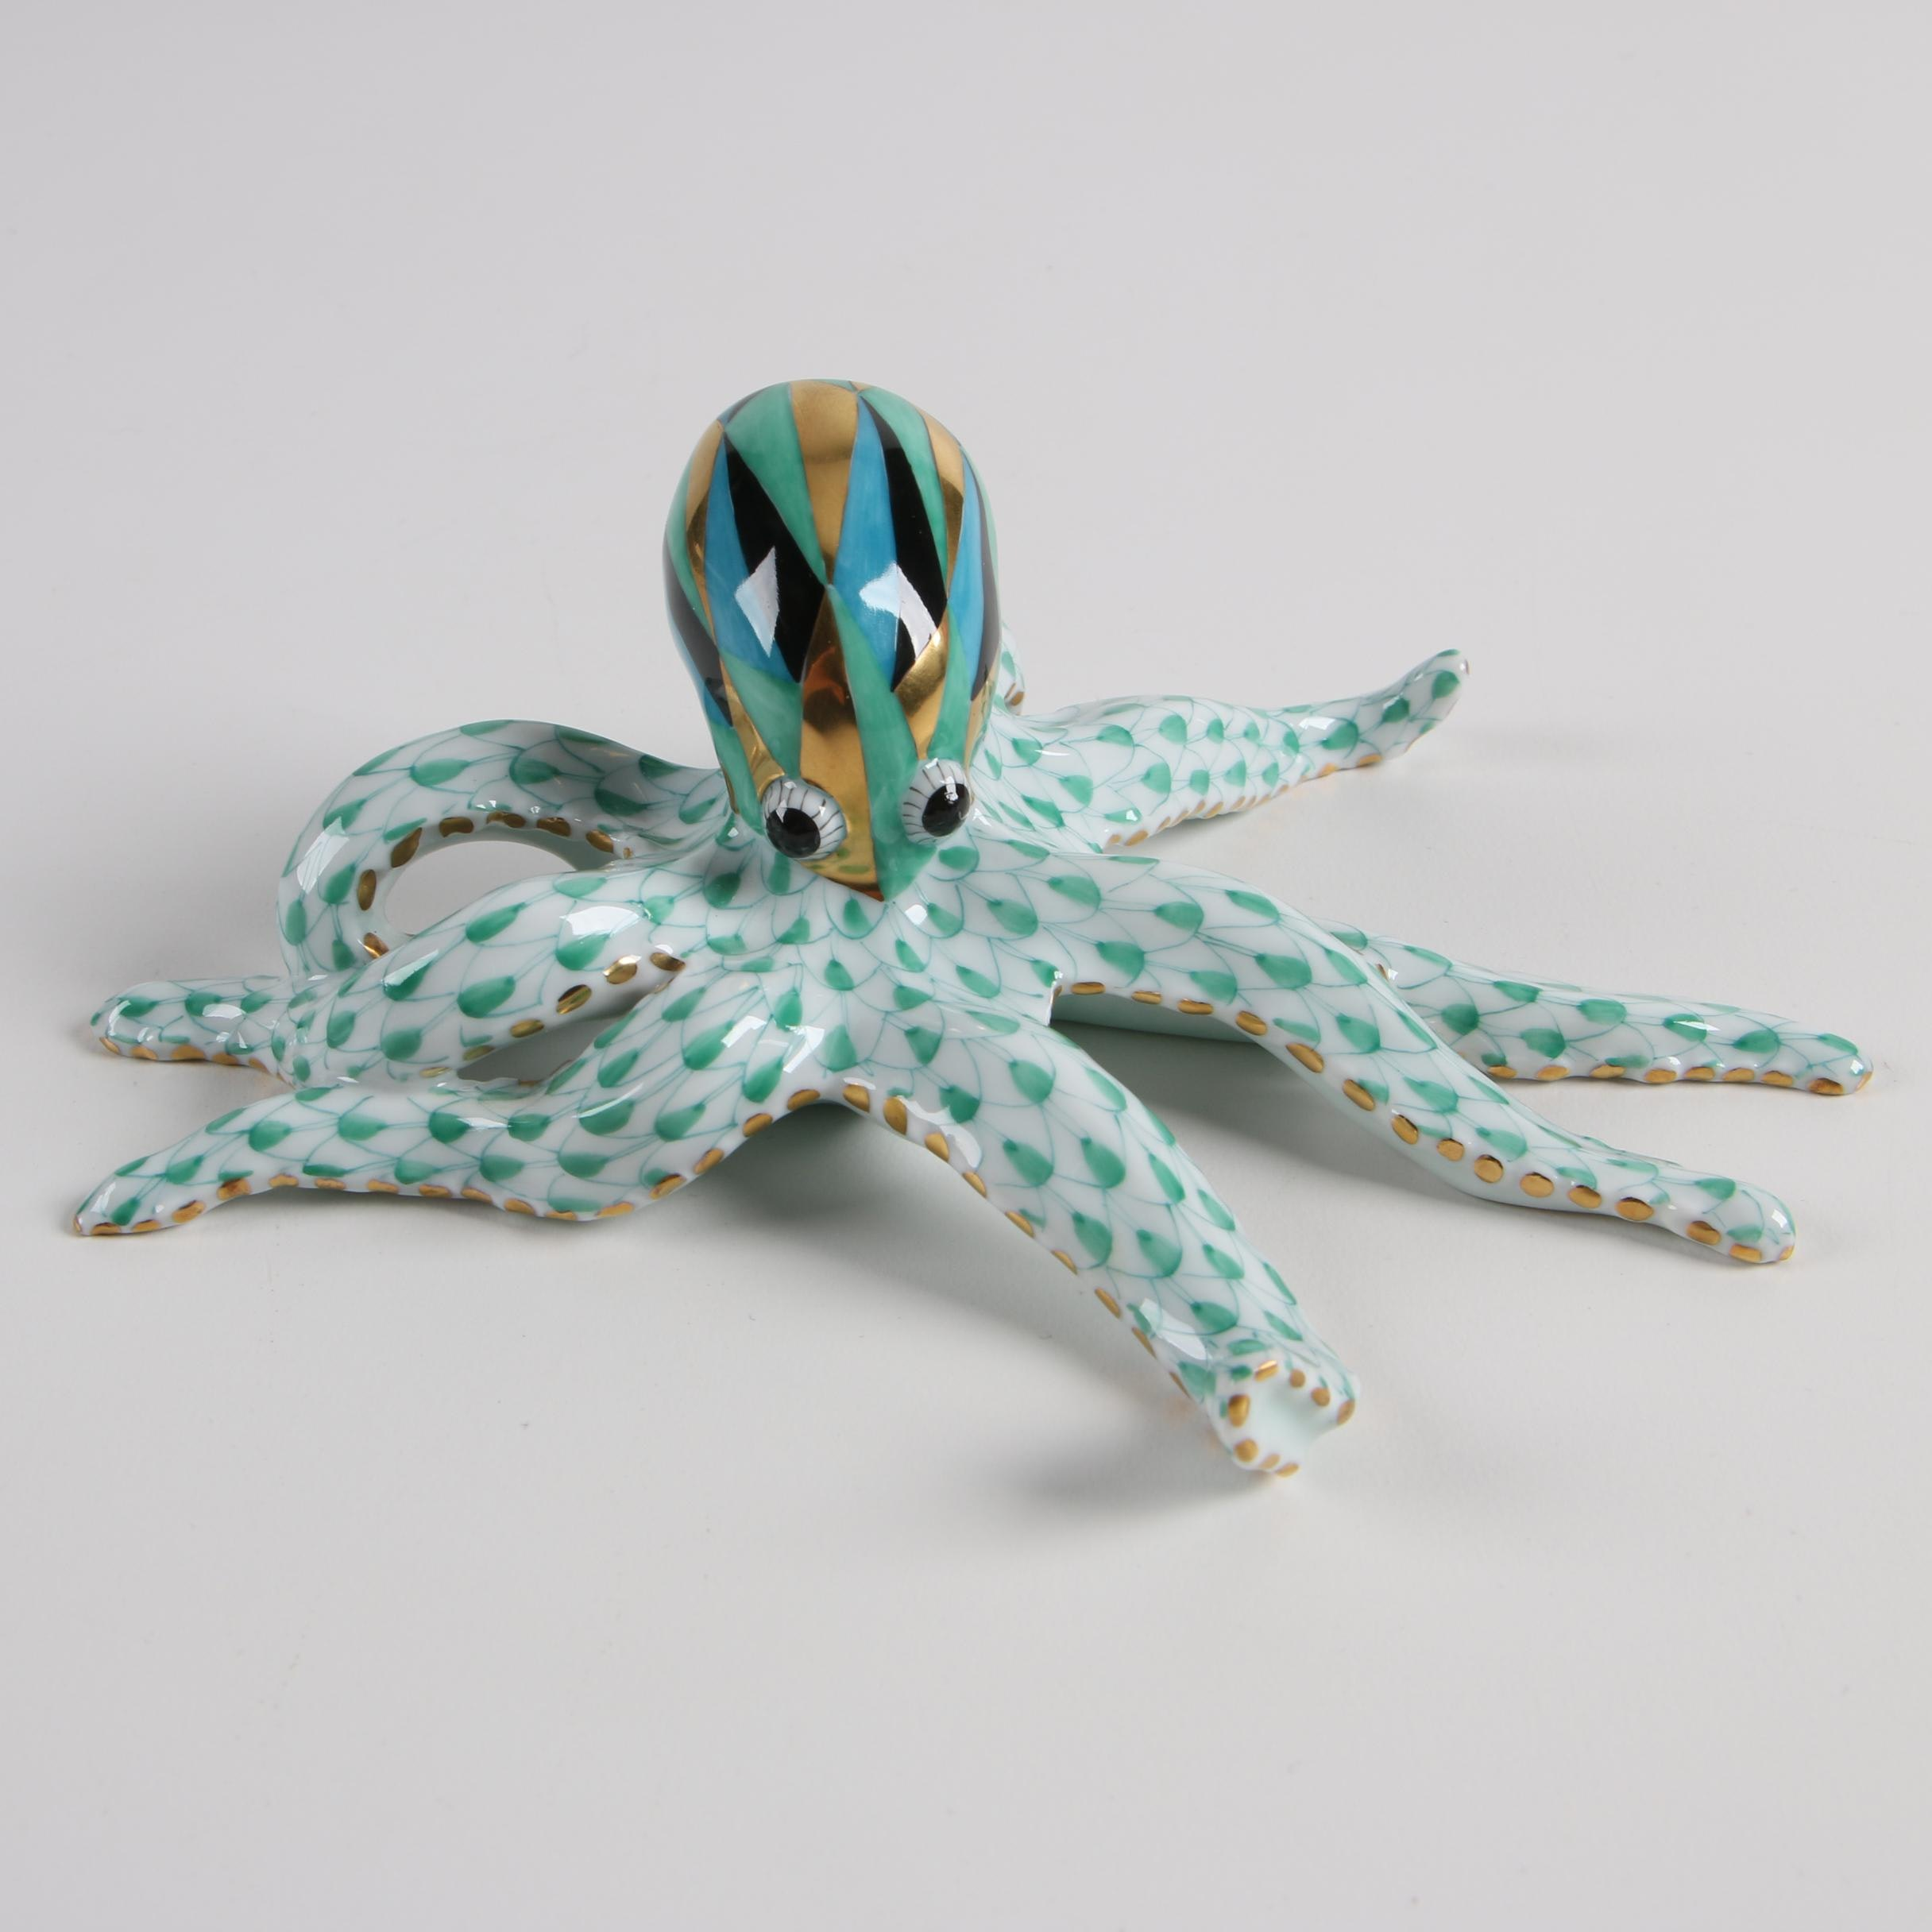 """Herend Hungary """"Octopus"""" Hand-Painted Porcelain Figurine"""